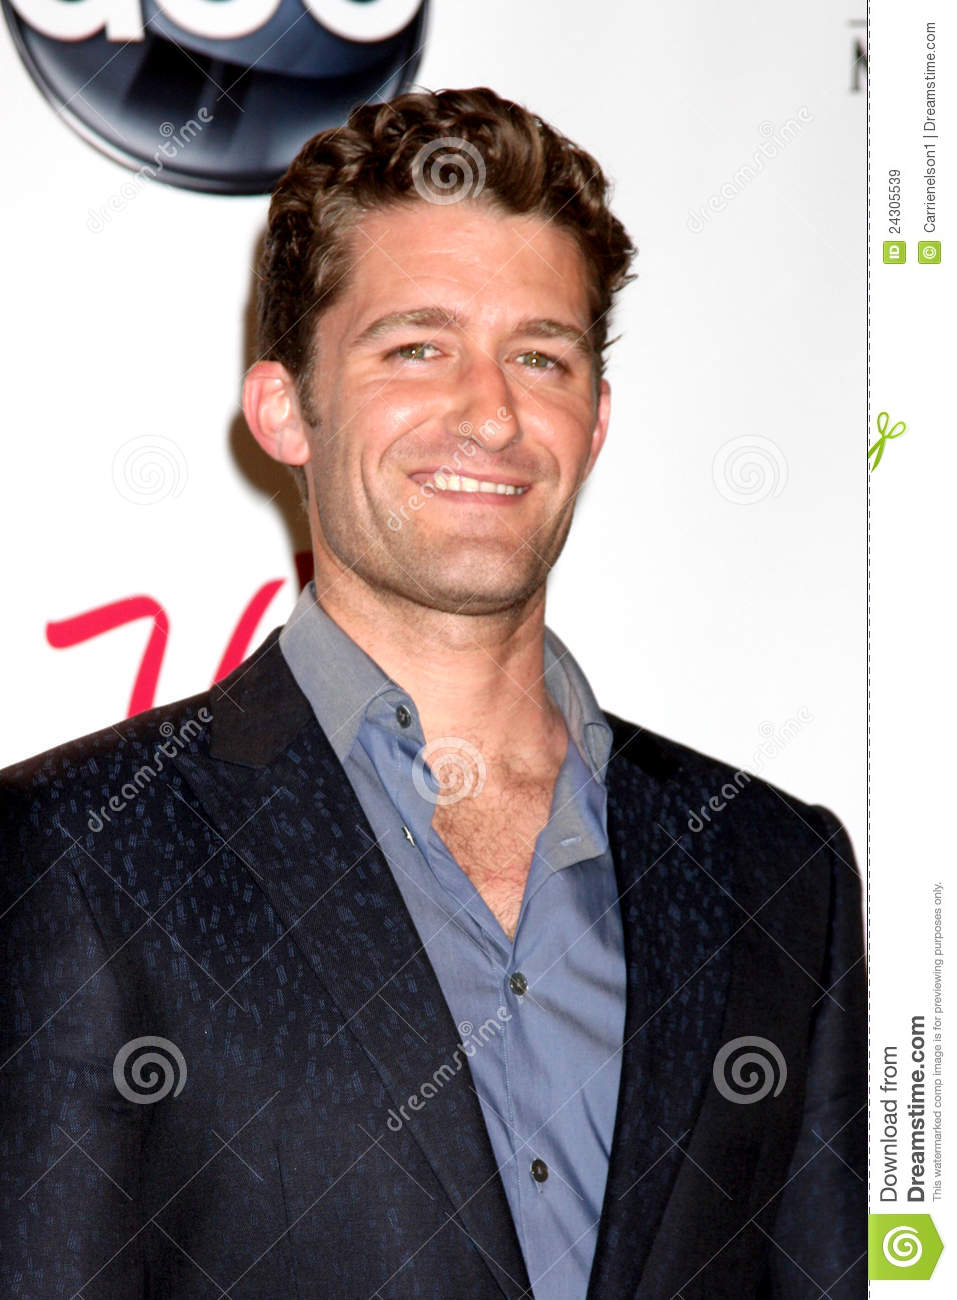 matthew morrison wikimatthew morrison tumblr, matthew morrison finding neverland, matthew morrison fansite, matthew morrison good wife, matthew morrison singing in the rain, matthew morrison all i need is the girl, matthew morrison we own the night lyrics, matthew morrison wiki, matthew morrison wife, matthew morrison glee performances, matthew morrison height, matthew morrison instagram, matthew morrison dream on, matthew morrison still got tonight, matthew morrison movies